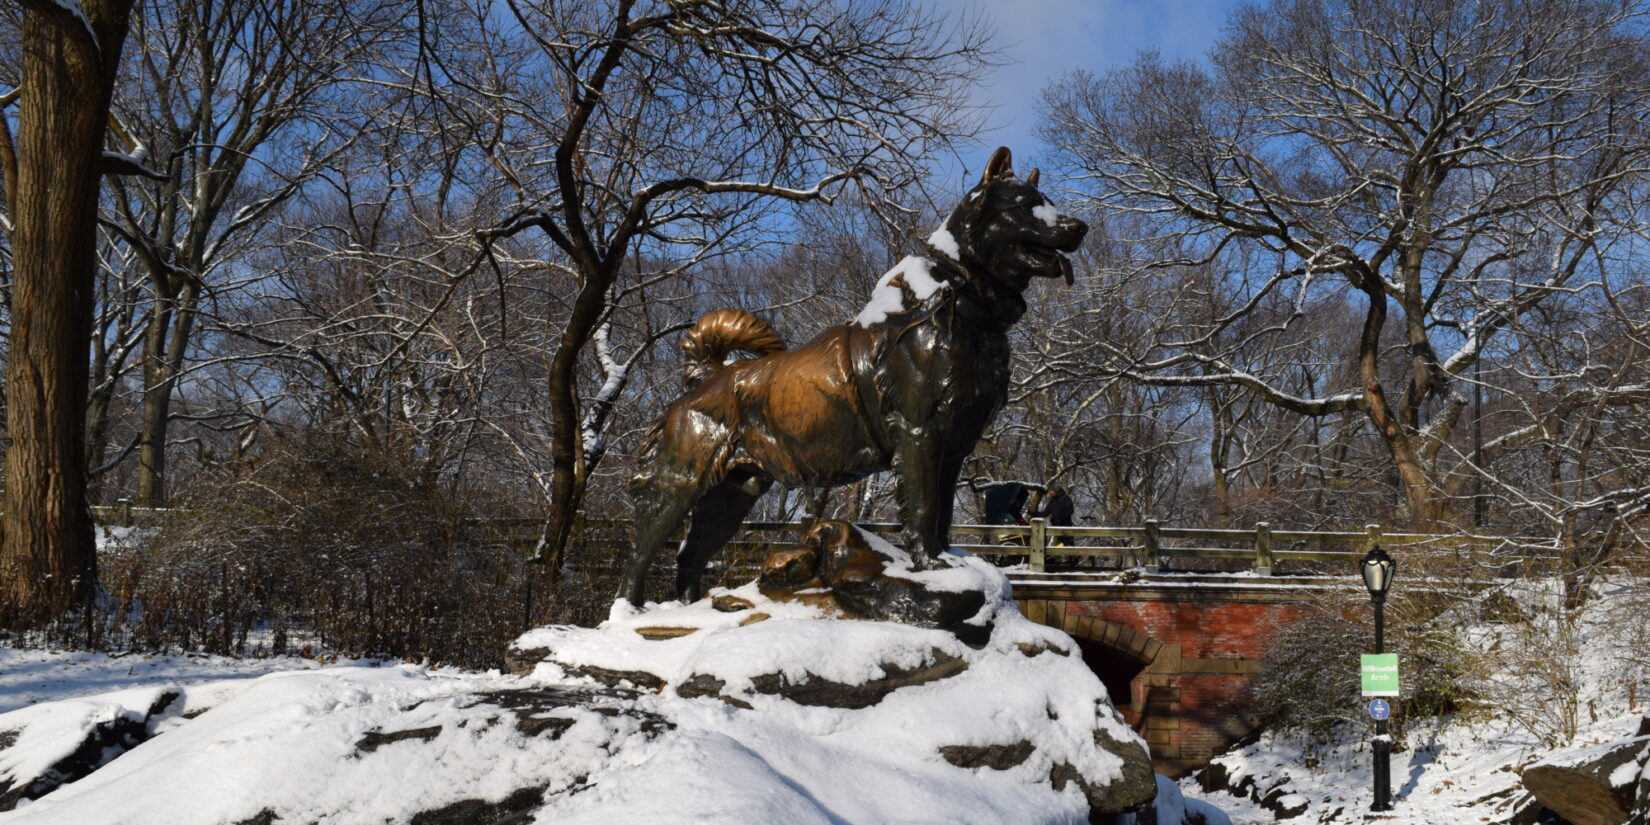 The statue of Balto photographed in mid-winter snow